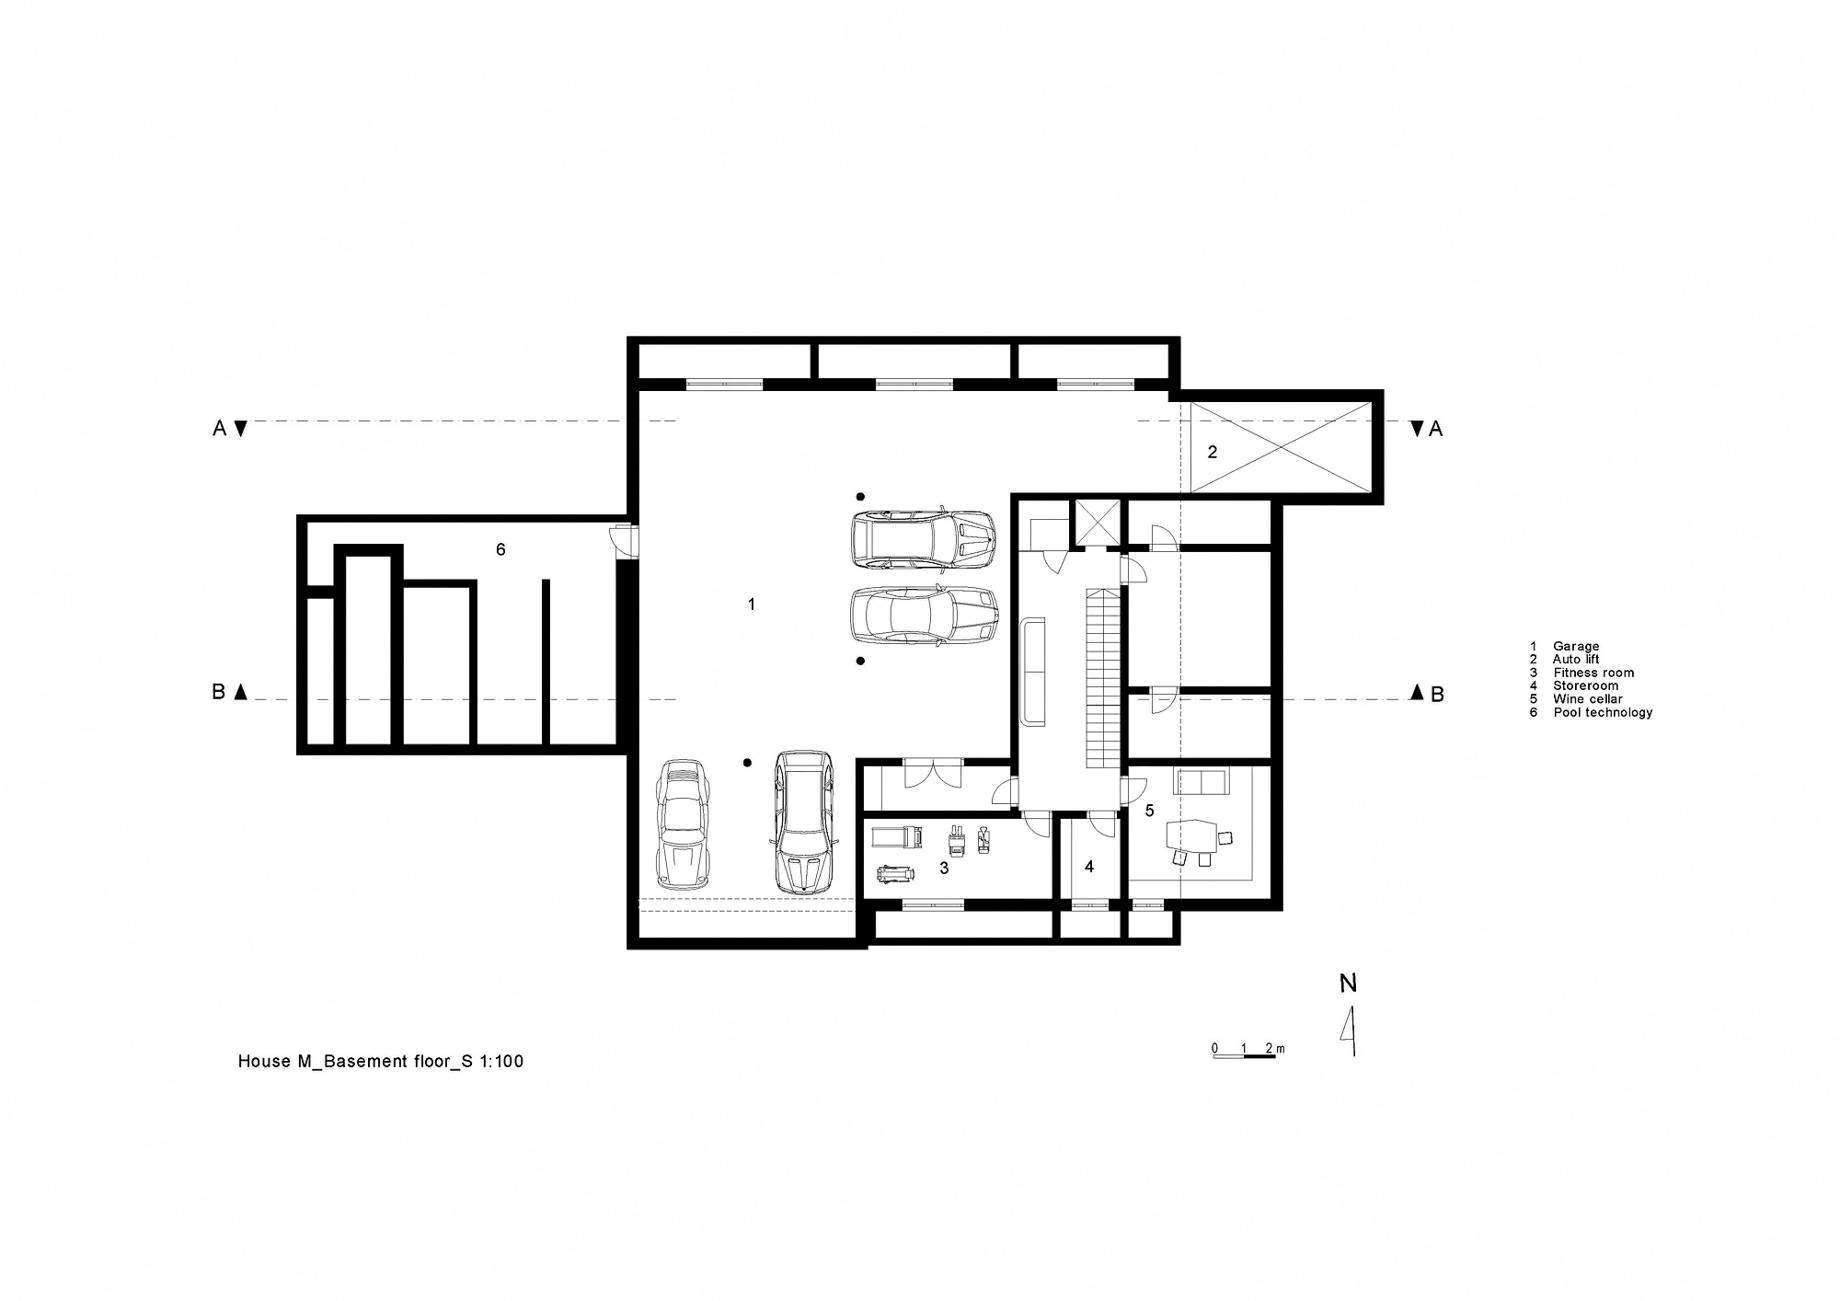 Basement Floor Plan - House M Luxury Residence - Merano, South Tyrol, Italy